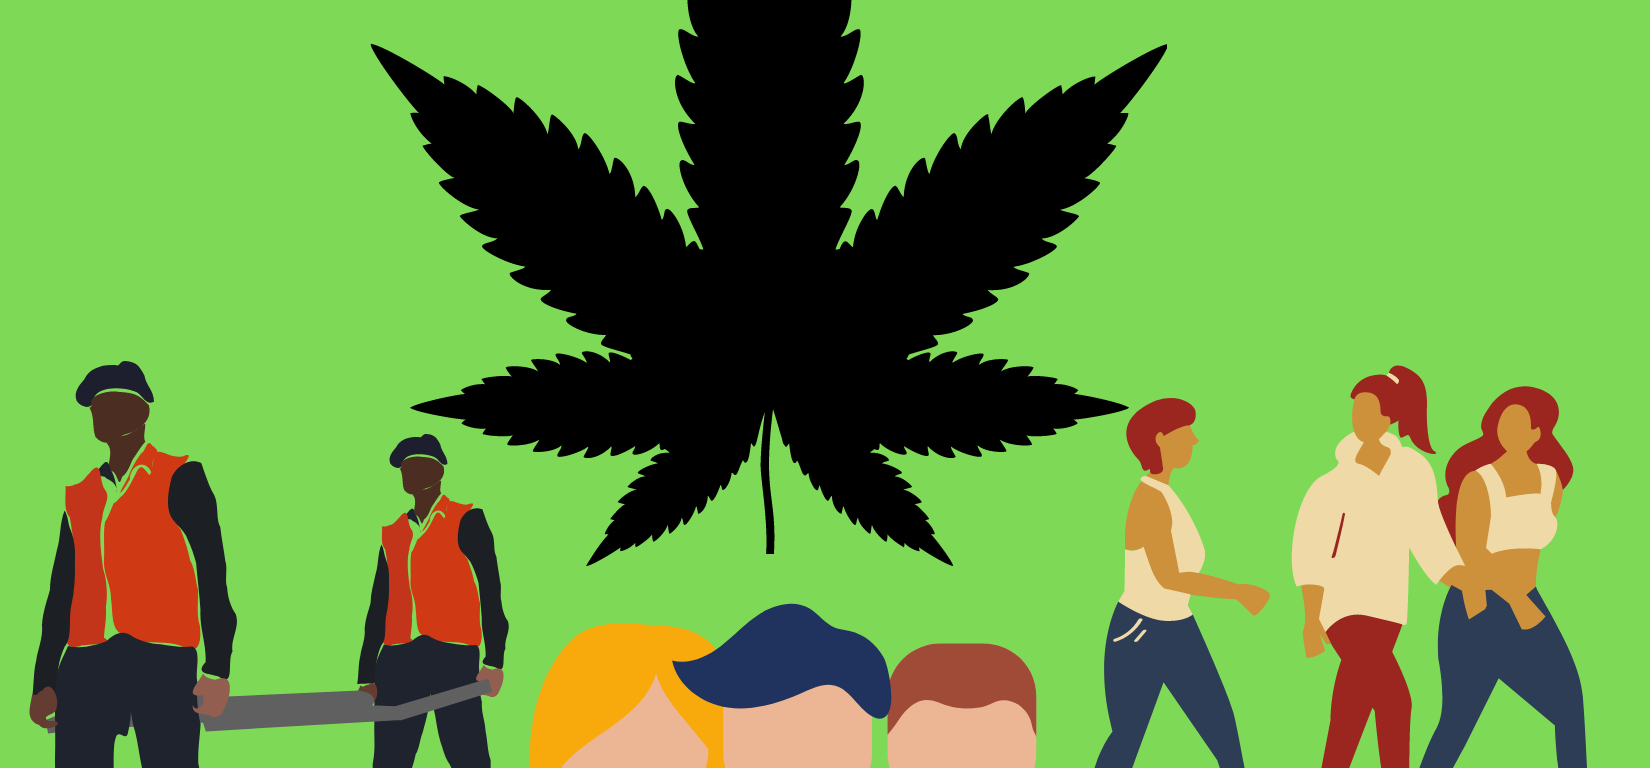 green back ground with black marajuana leaf in the middle with drawings of people on the left, middle, and right